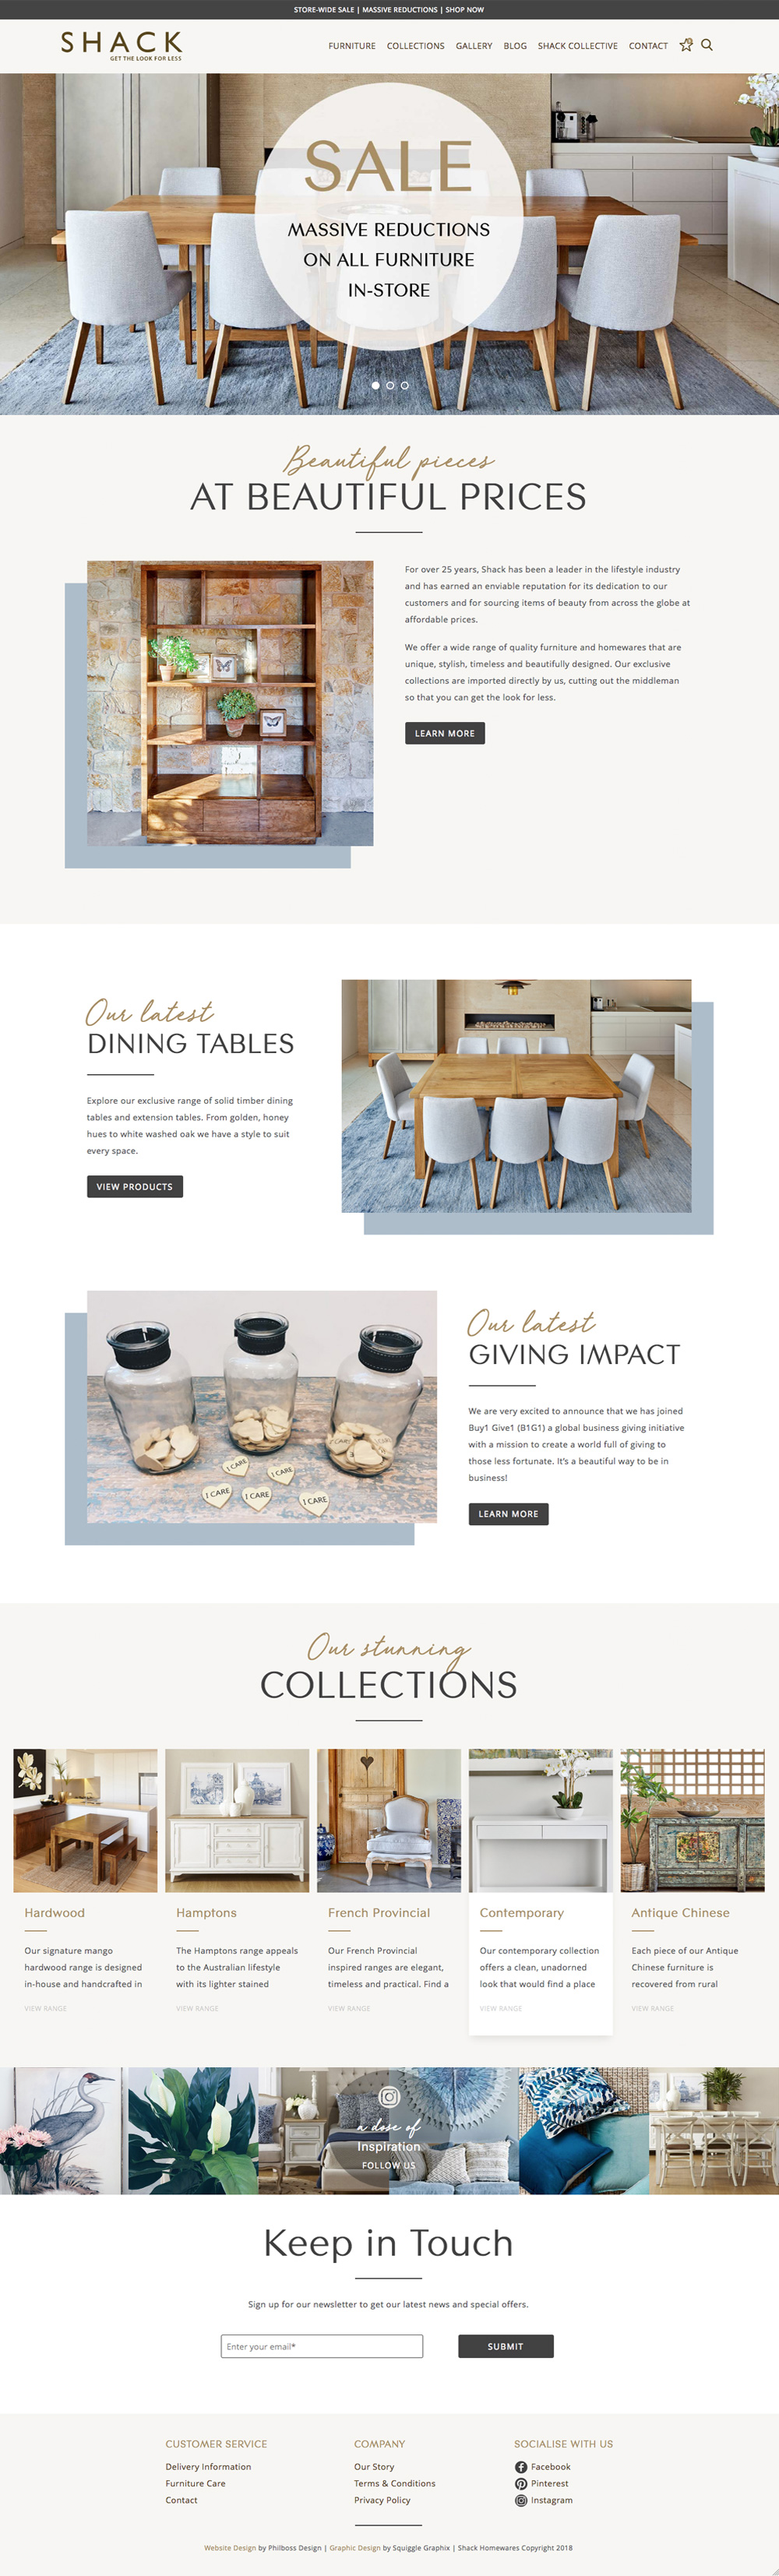 Shack Furniture Website Redesign